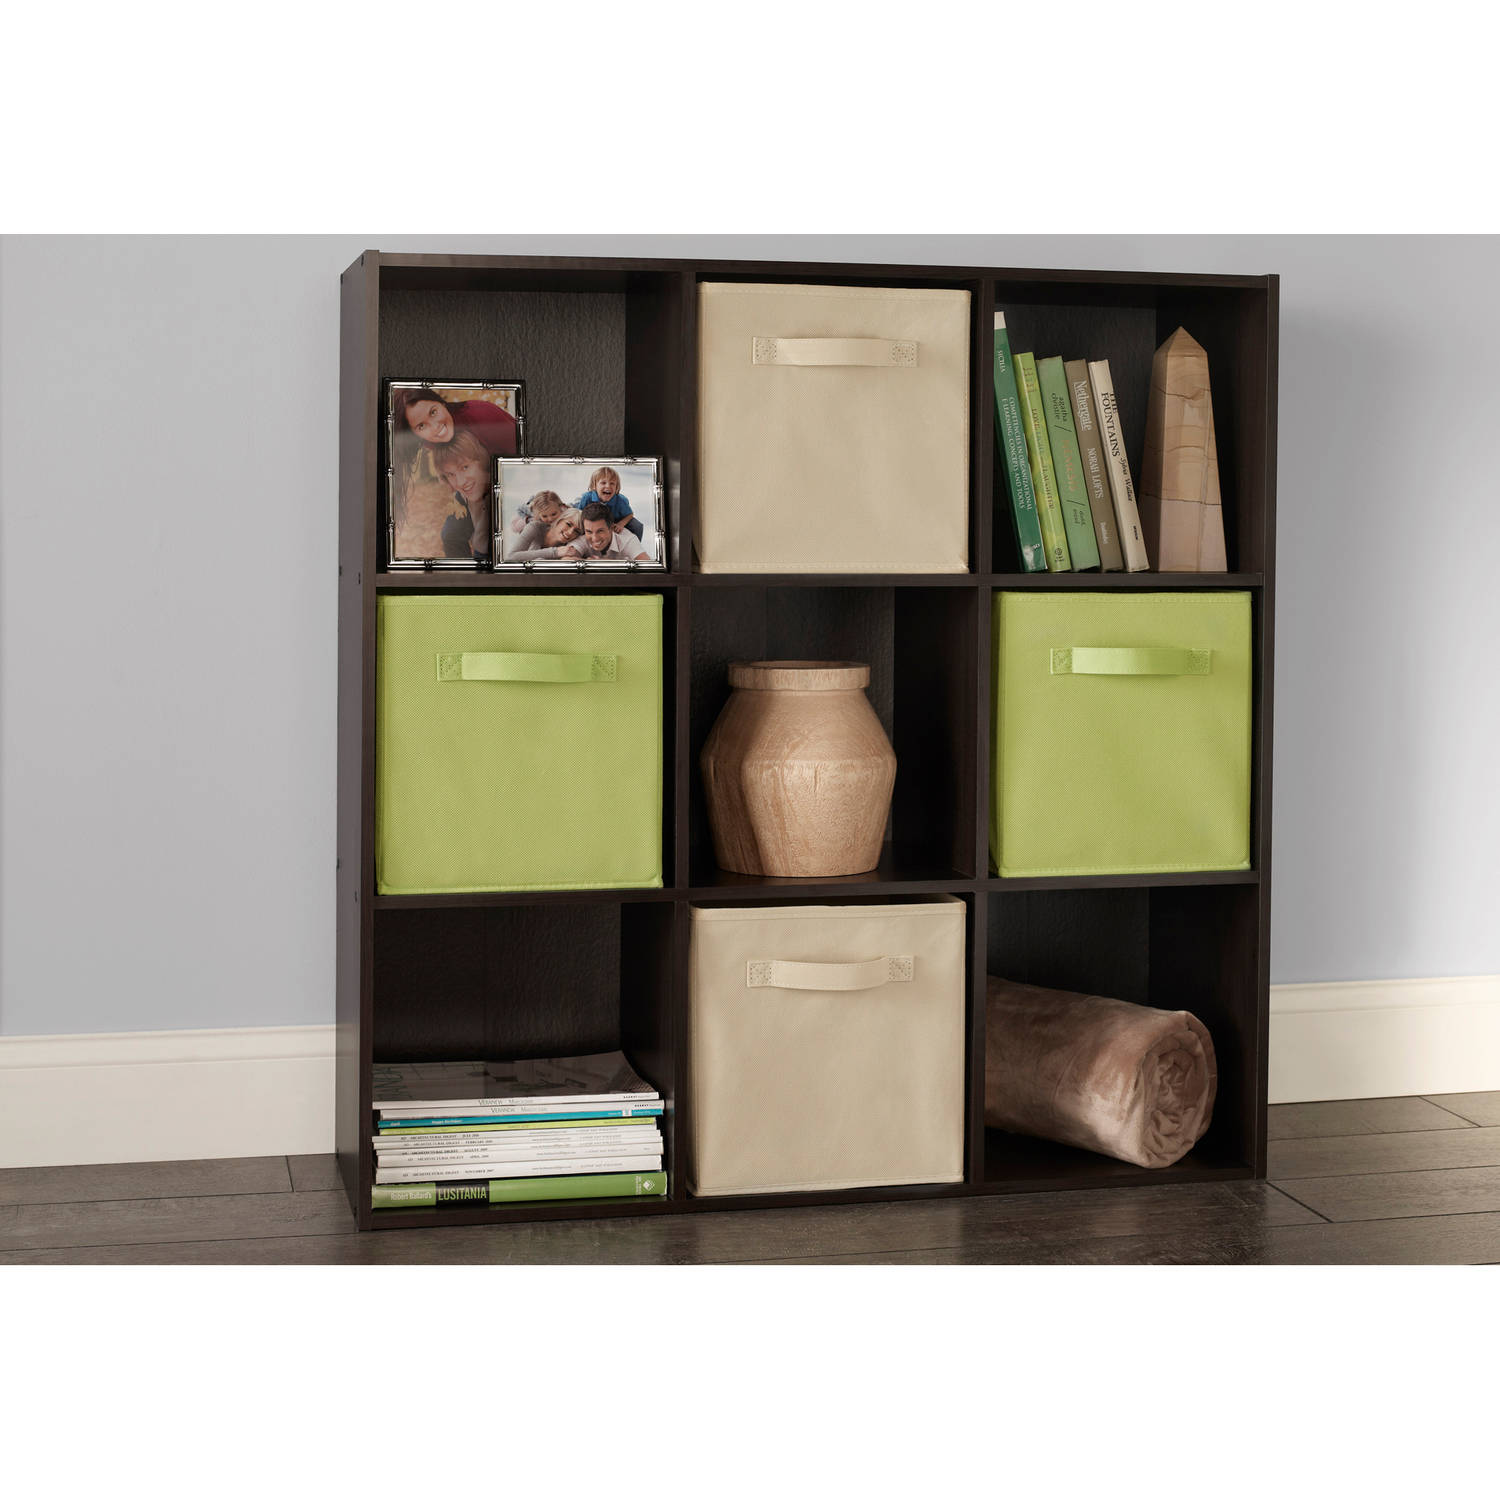 storage cubes mainstays no tools assembly 8-cube shelving storage unit, multiple colors -  walmart.com FZDPEBD